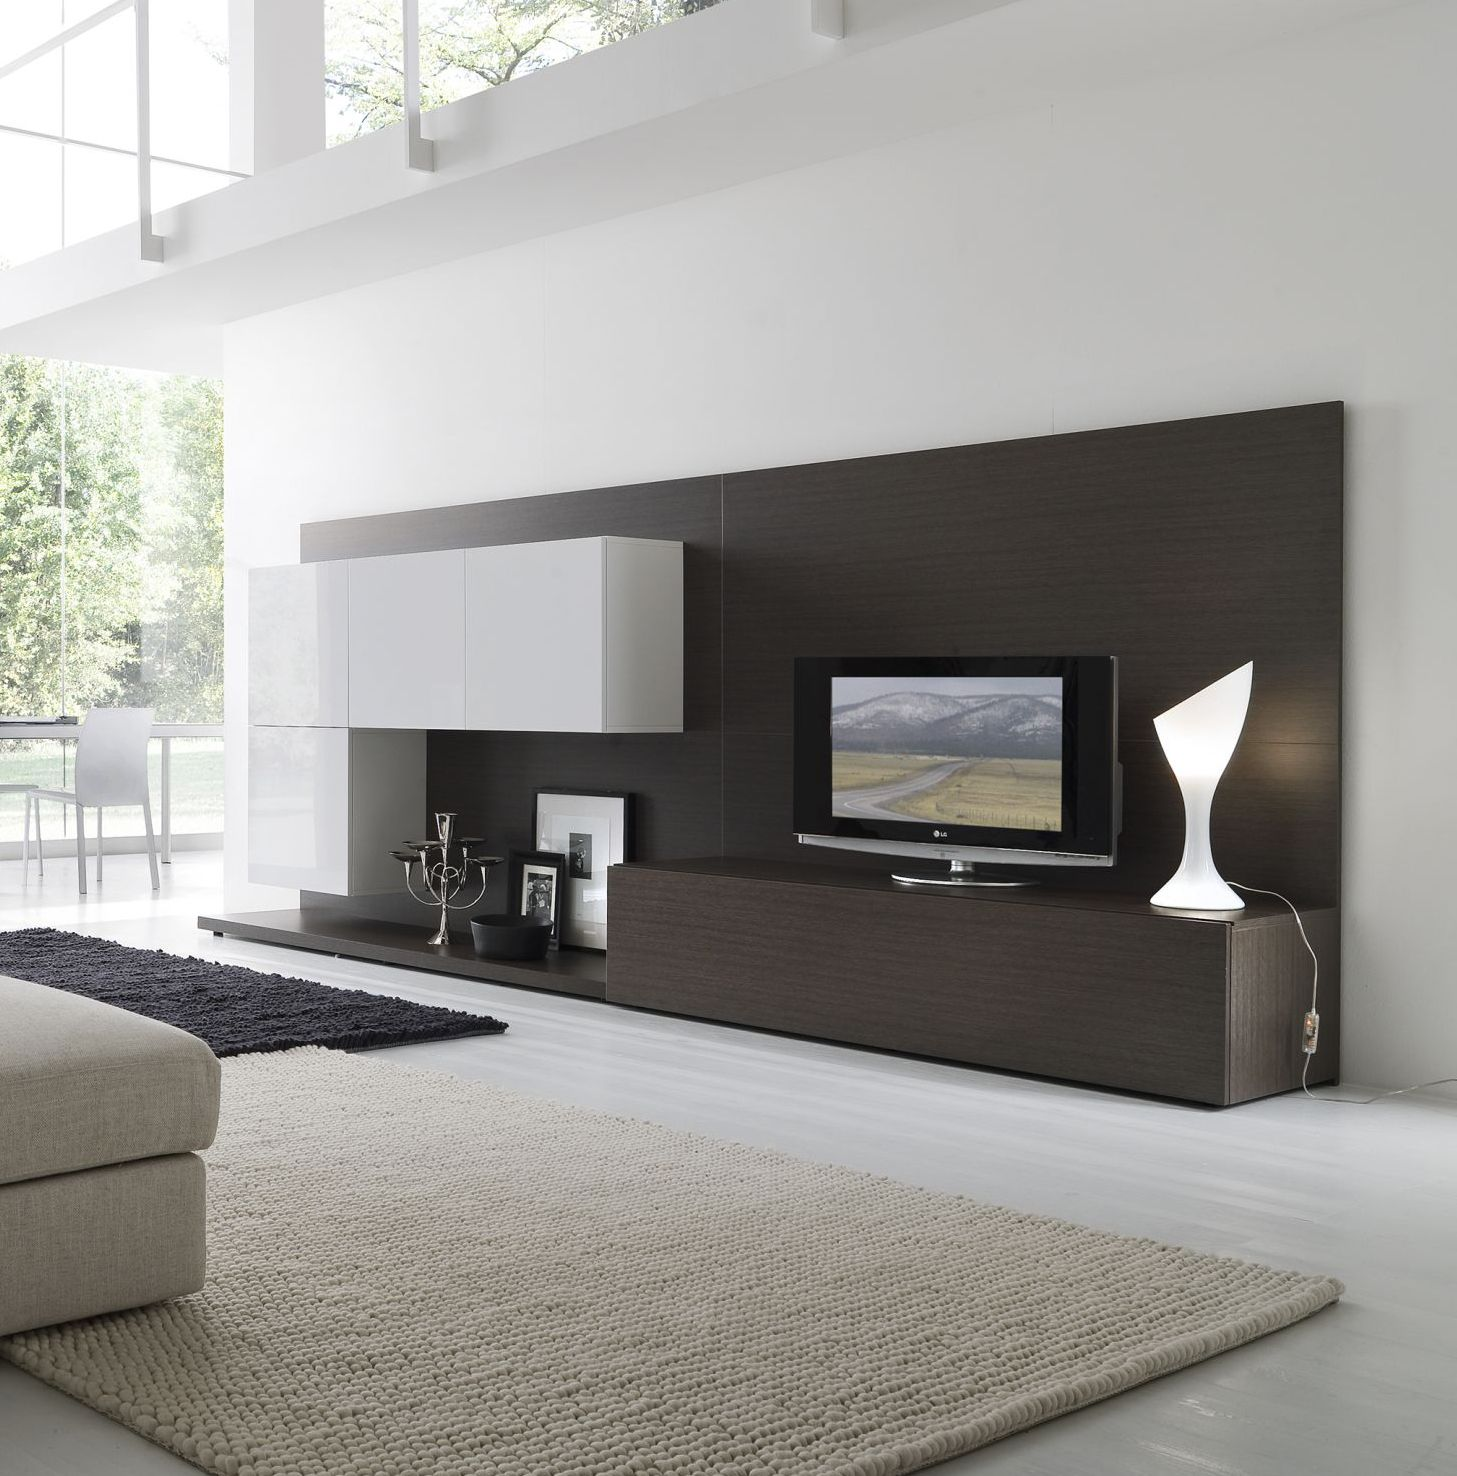 Tv Unit Designs For Living Room Http Abnancom Wp Content Uploads 2012 07 Modern Living Room